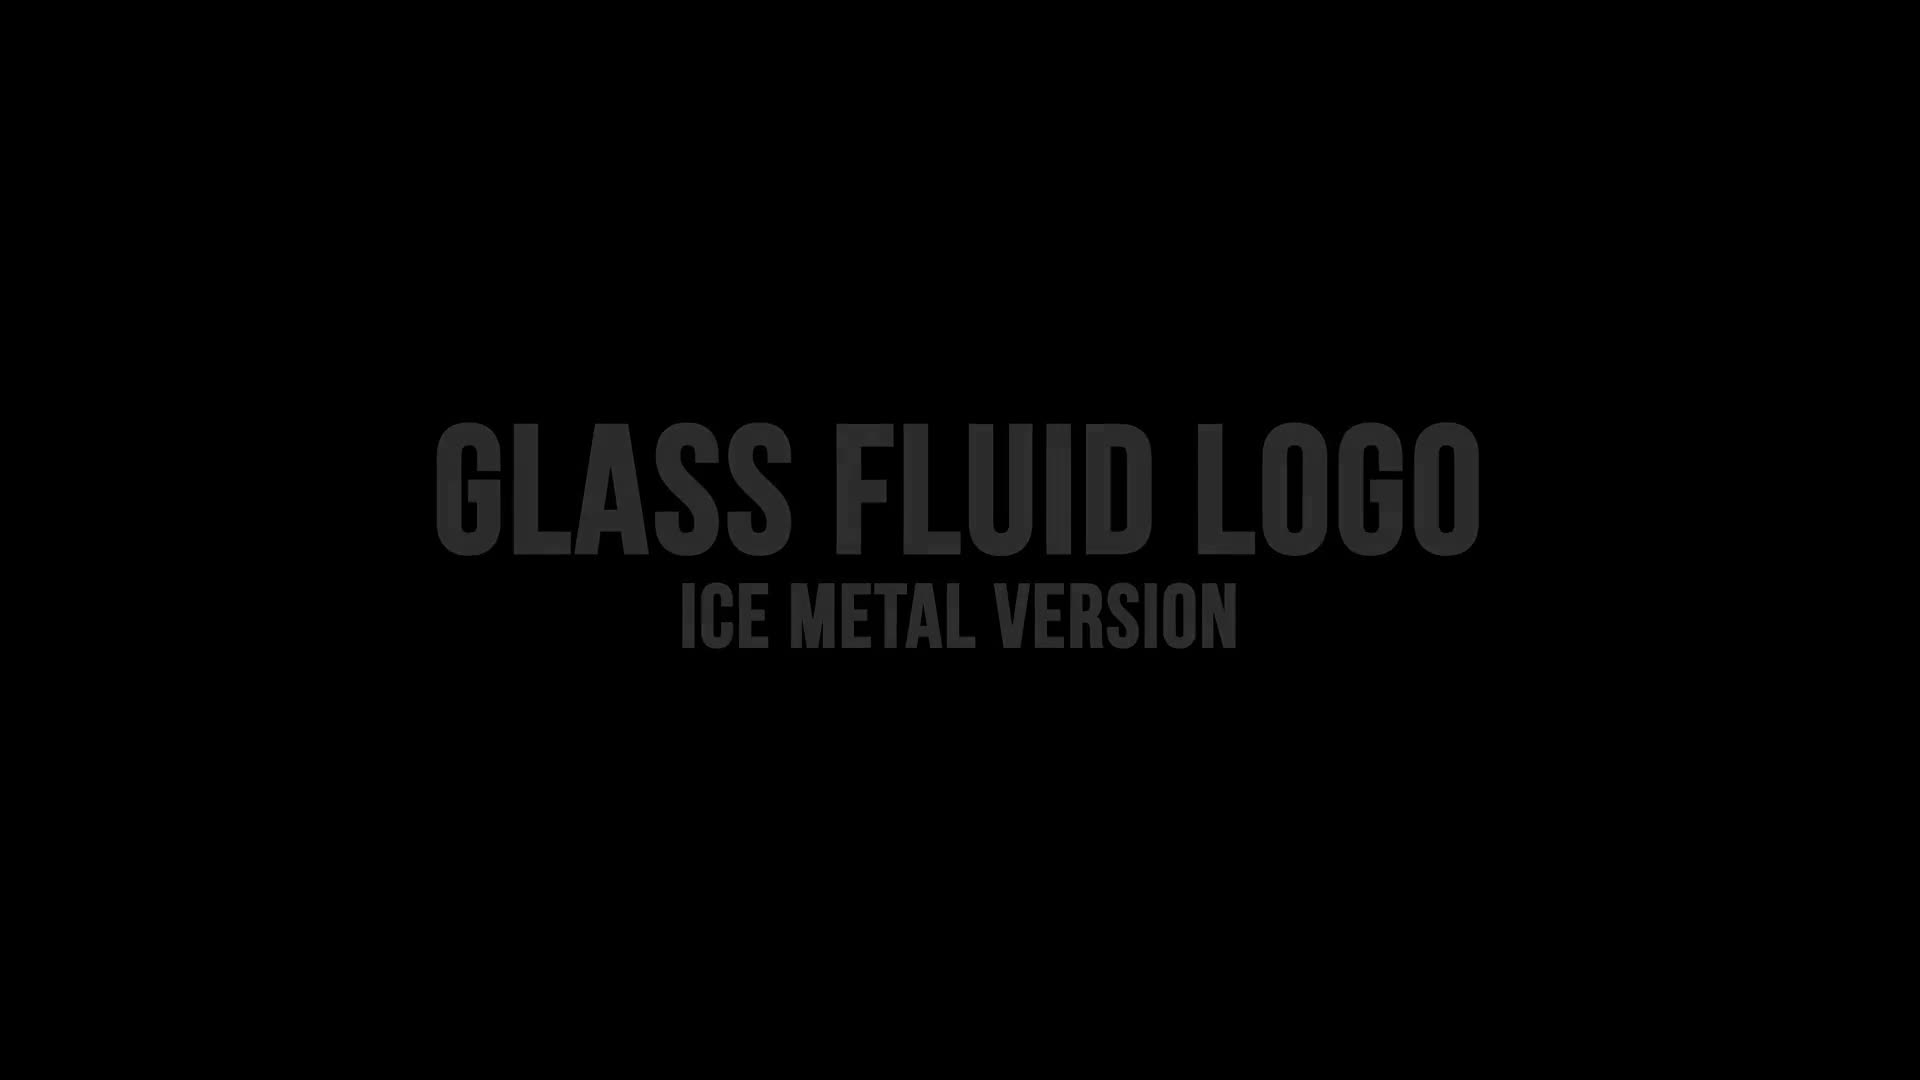 Glass Fluid Logo Reveal - Download Videohive 18623624